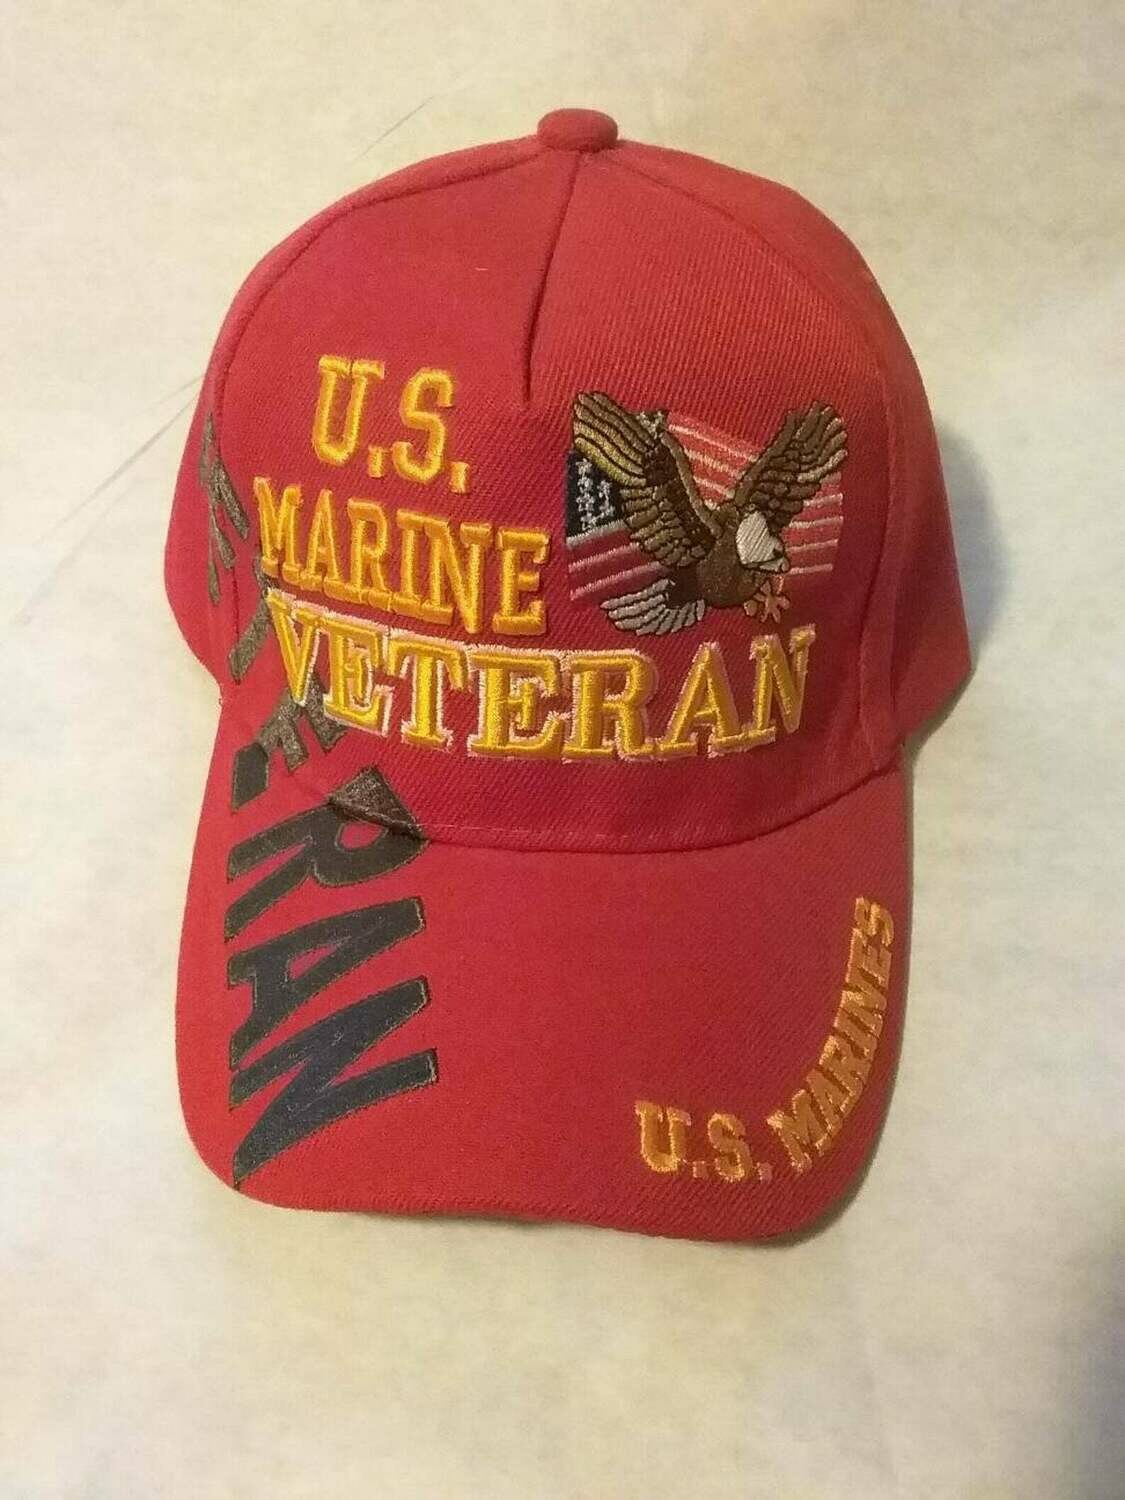 RED MARINE VETERAN (with eagle flag)